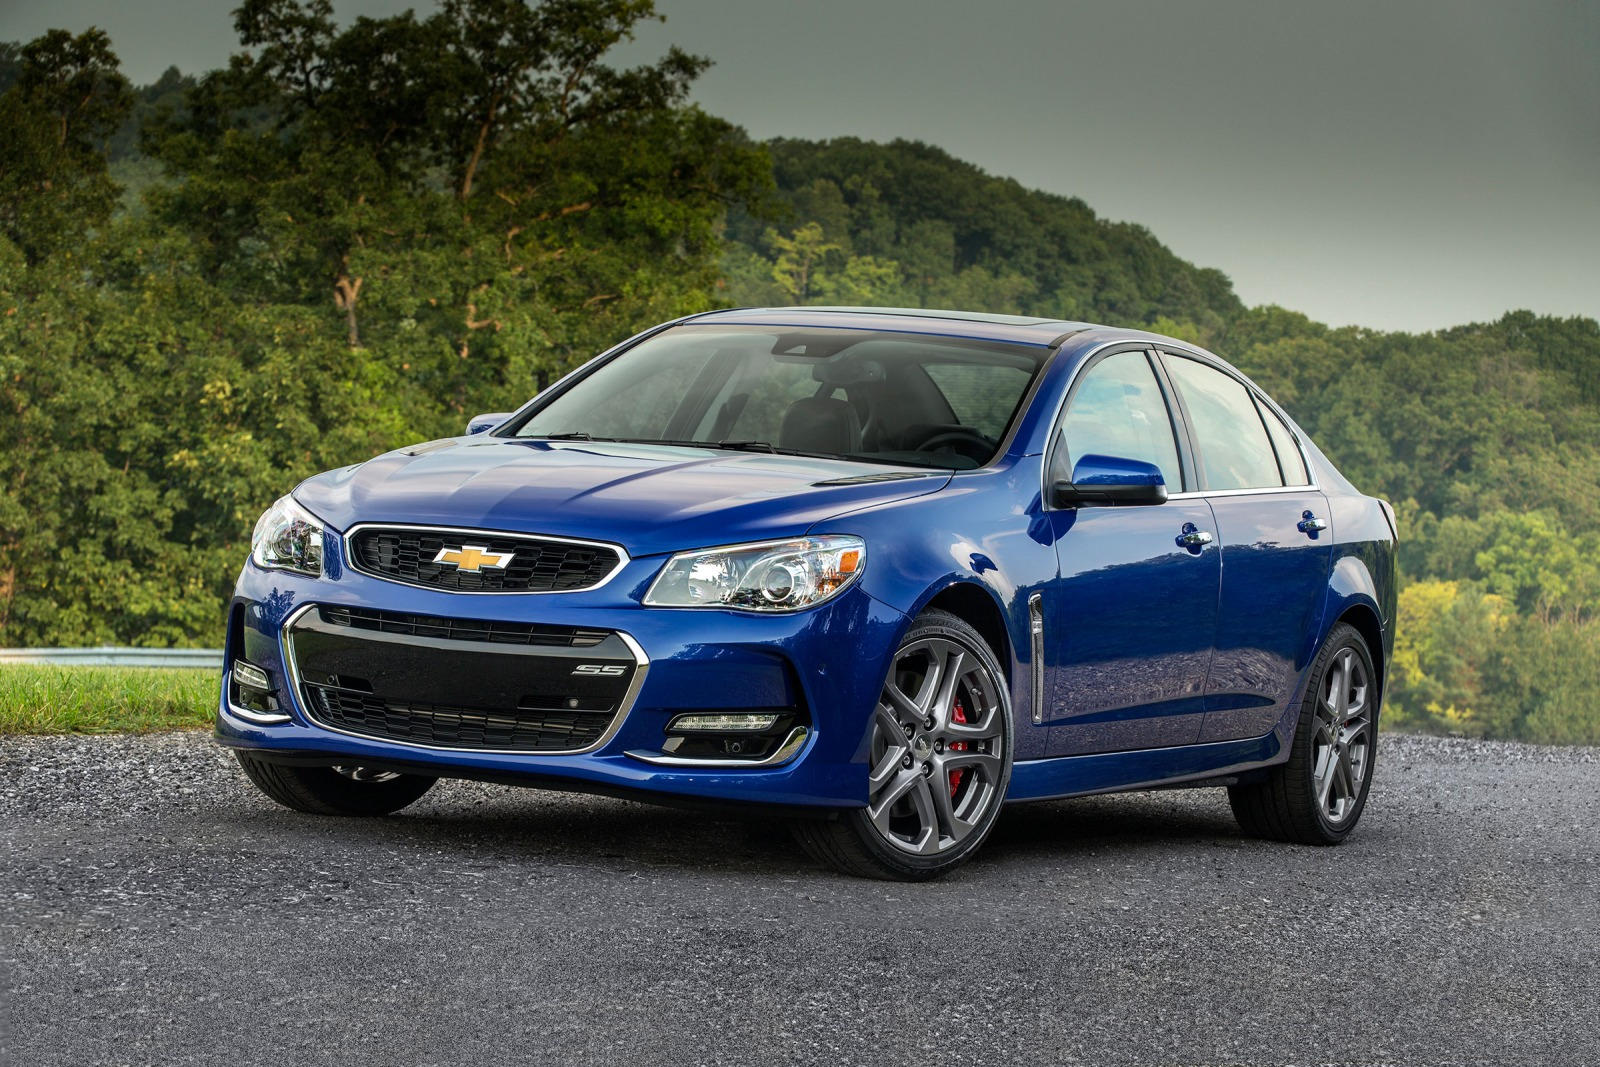 2018 Chevrolet Ss Review Trims Specs And Price Carbuzz